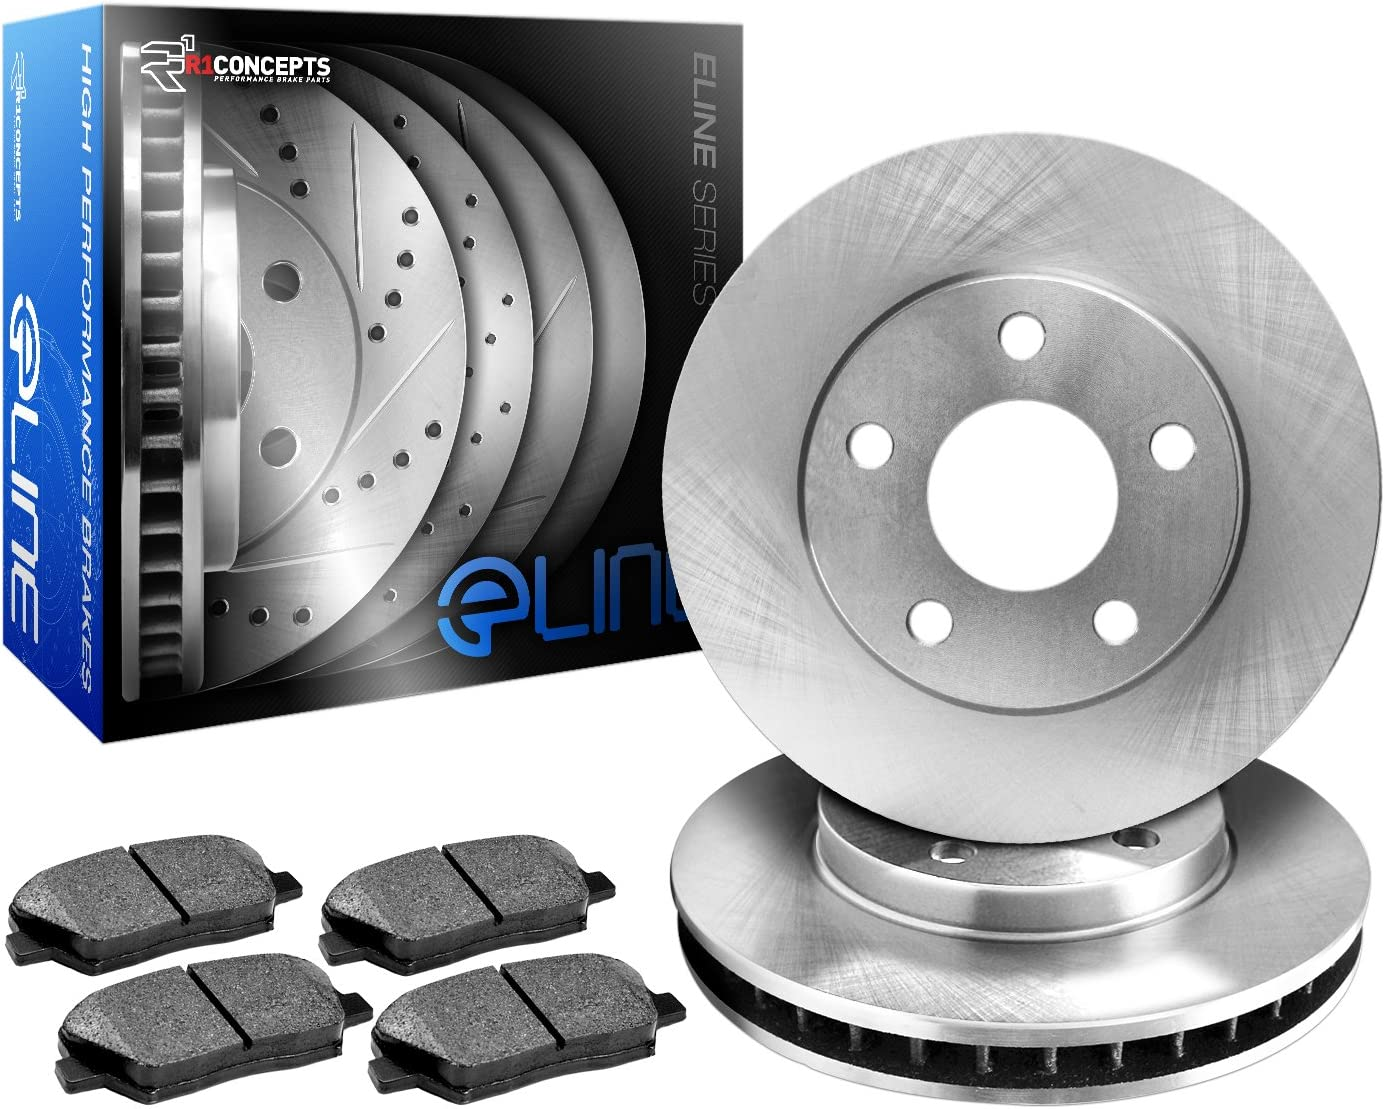 Rear R1 Concepts KEOE11648 Eline Series Replacement Rotors And Ceramic Pads Kit